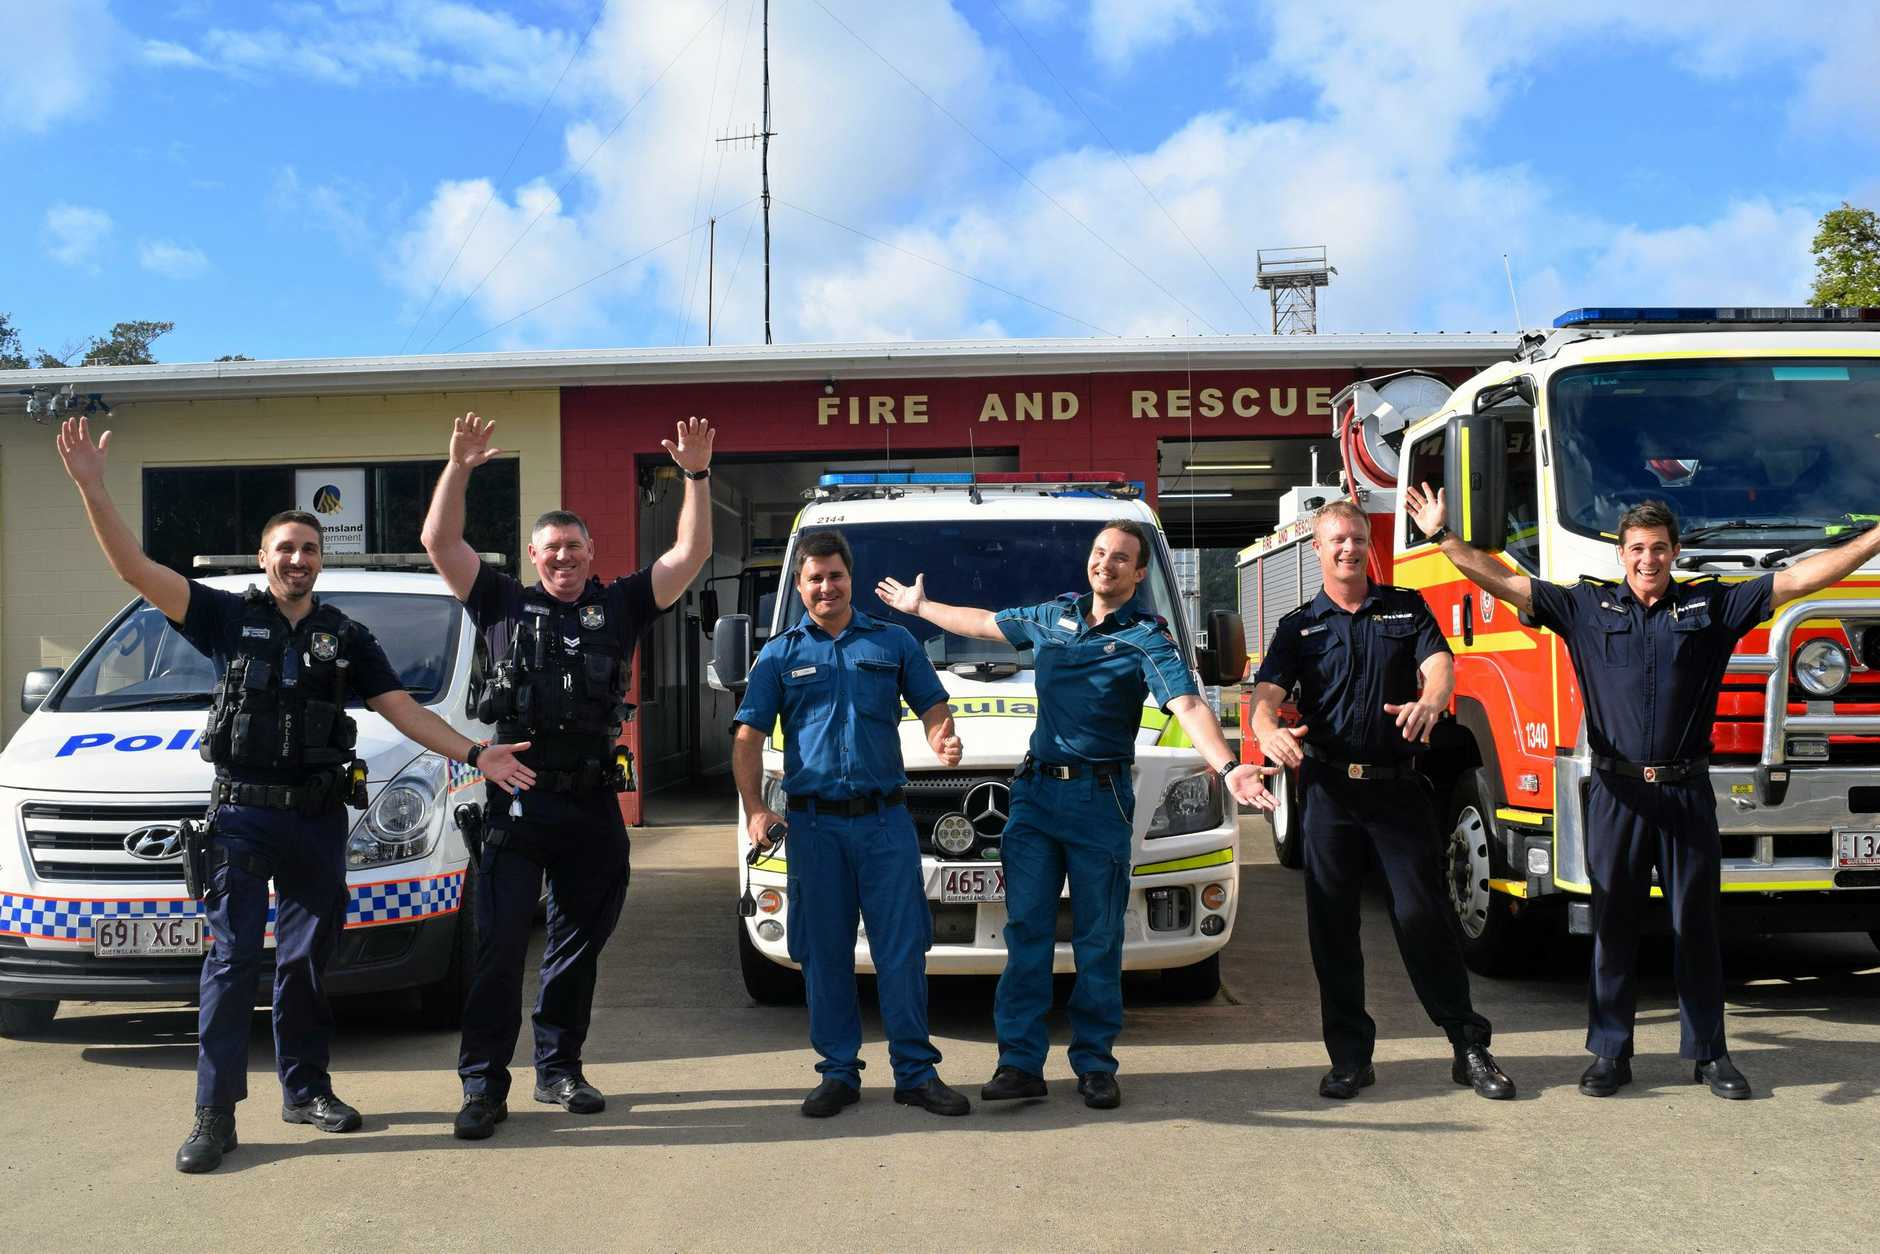 Whitsunday emergency services personnel Isaac Mahony, Nathan Bentley, Chris Cranmer, Alec Simpson, Nick Bellinger and Blake Broadwood are looking forward to this year's Whitsunday 000 Ball.